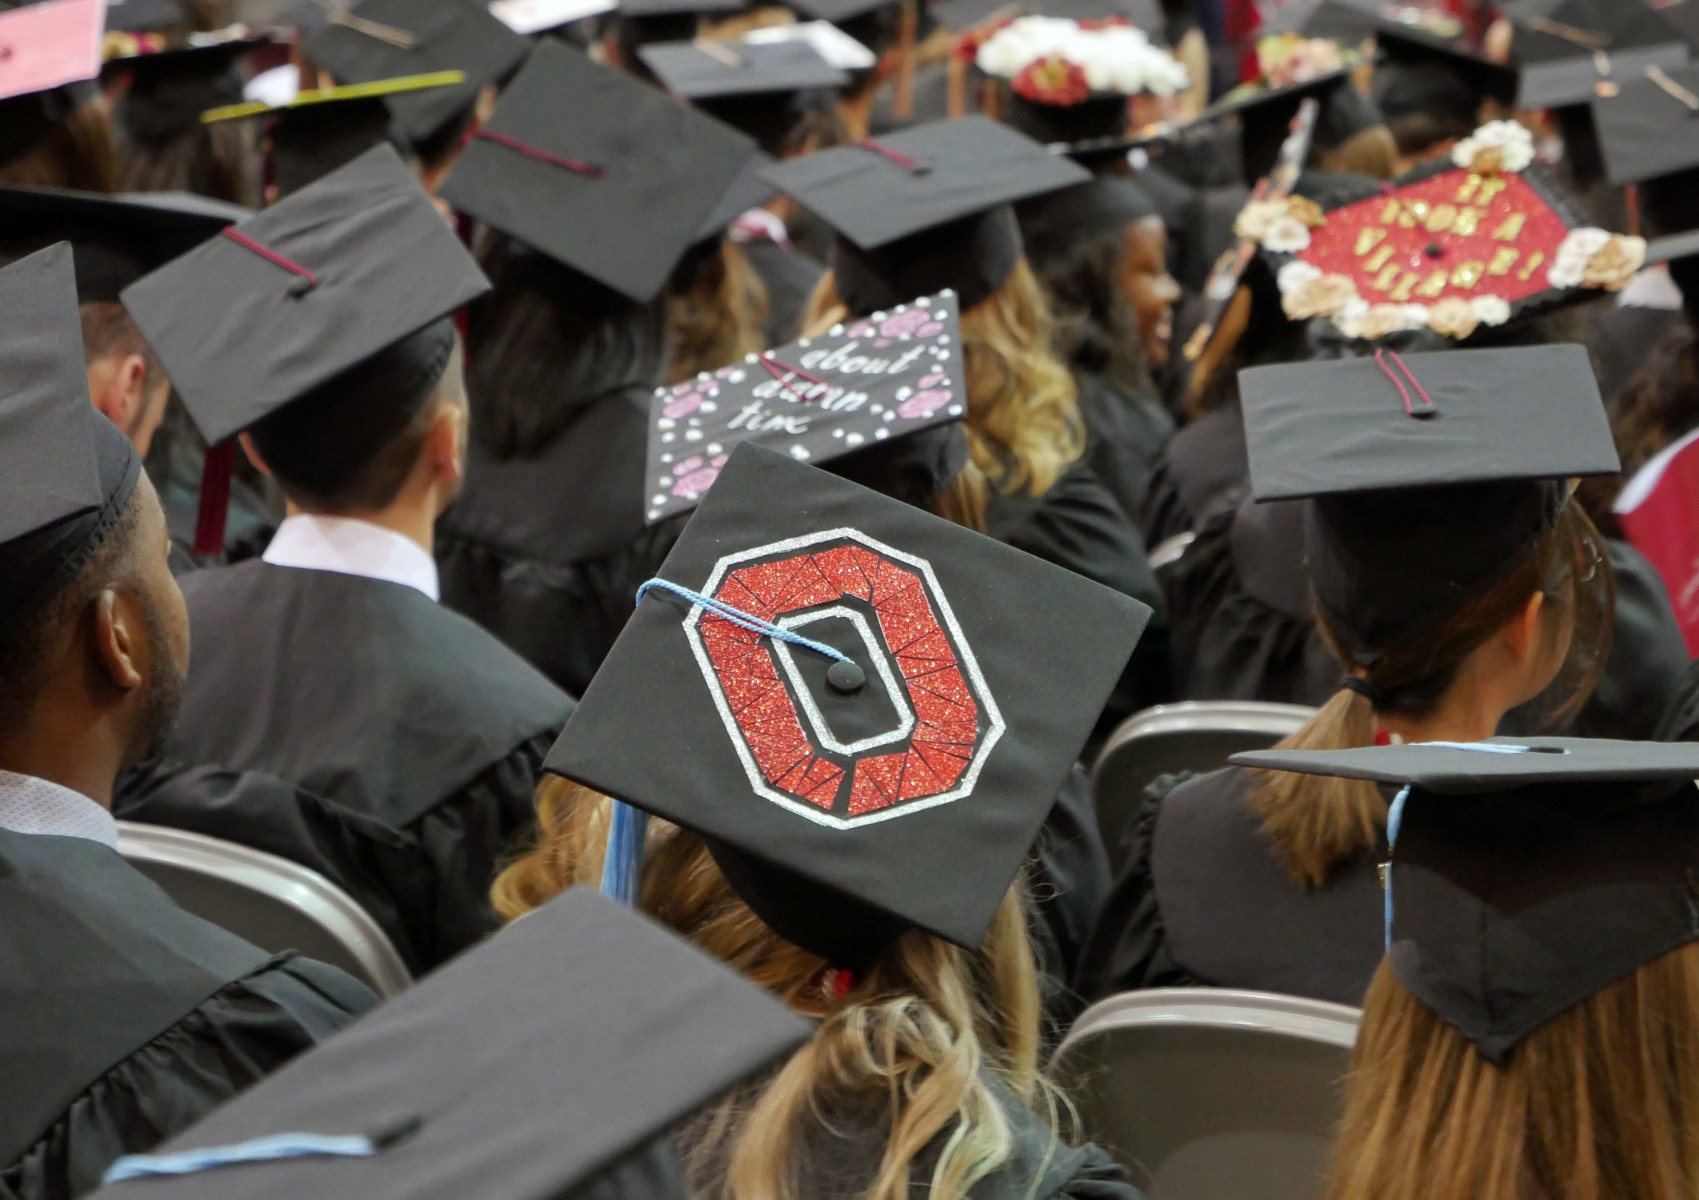 Wright State Graduation 2020.Ohio State Eliminates Fees Improves Affordability